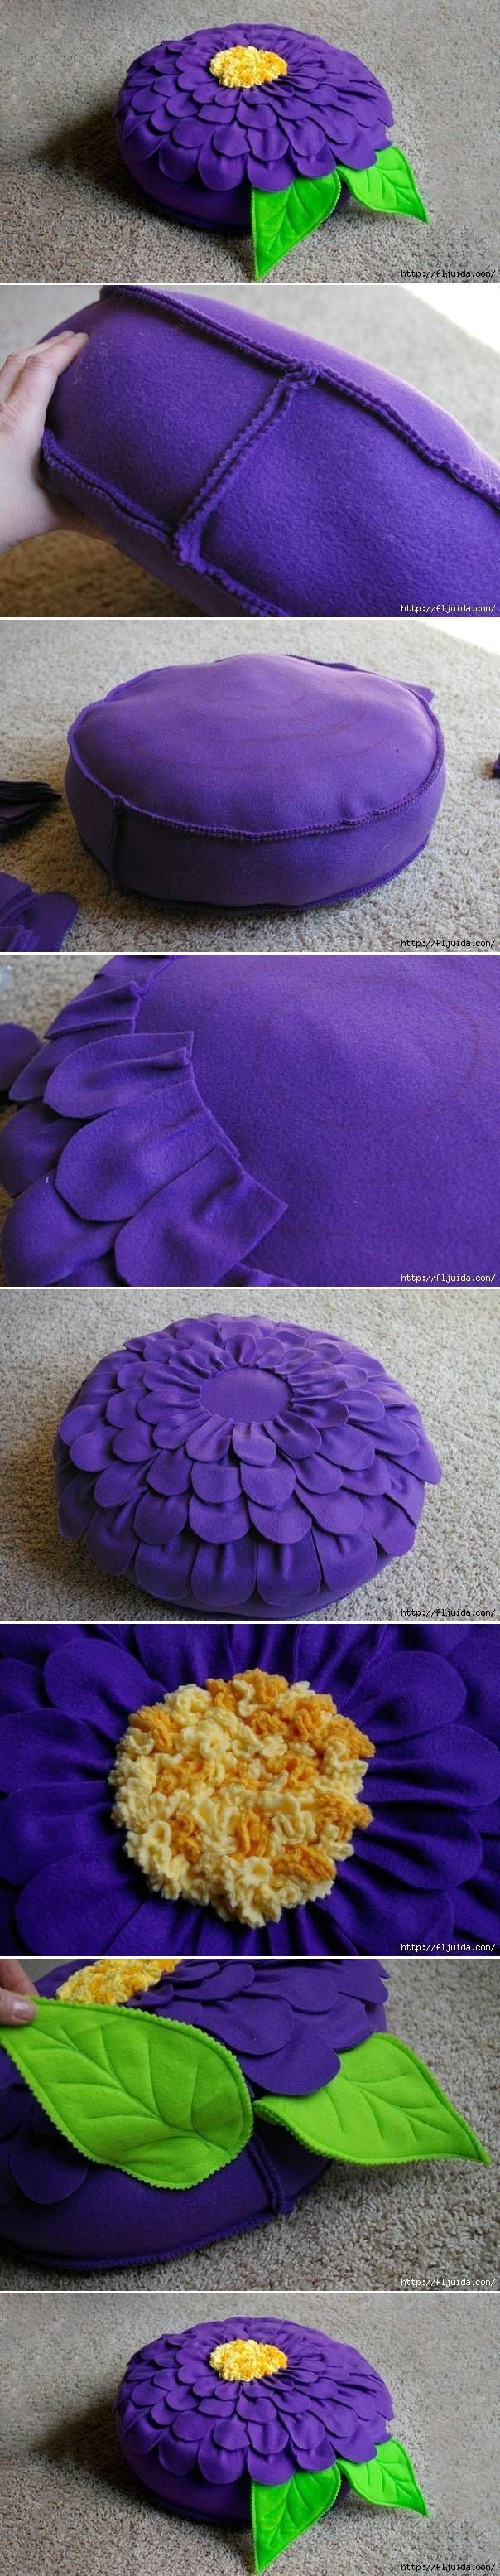 DIY Beautiful Flower Cushion | FabDIY